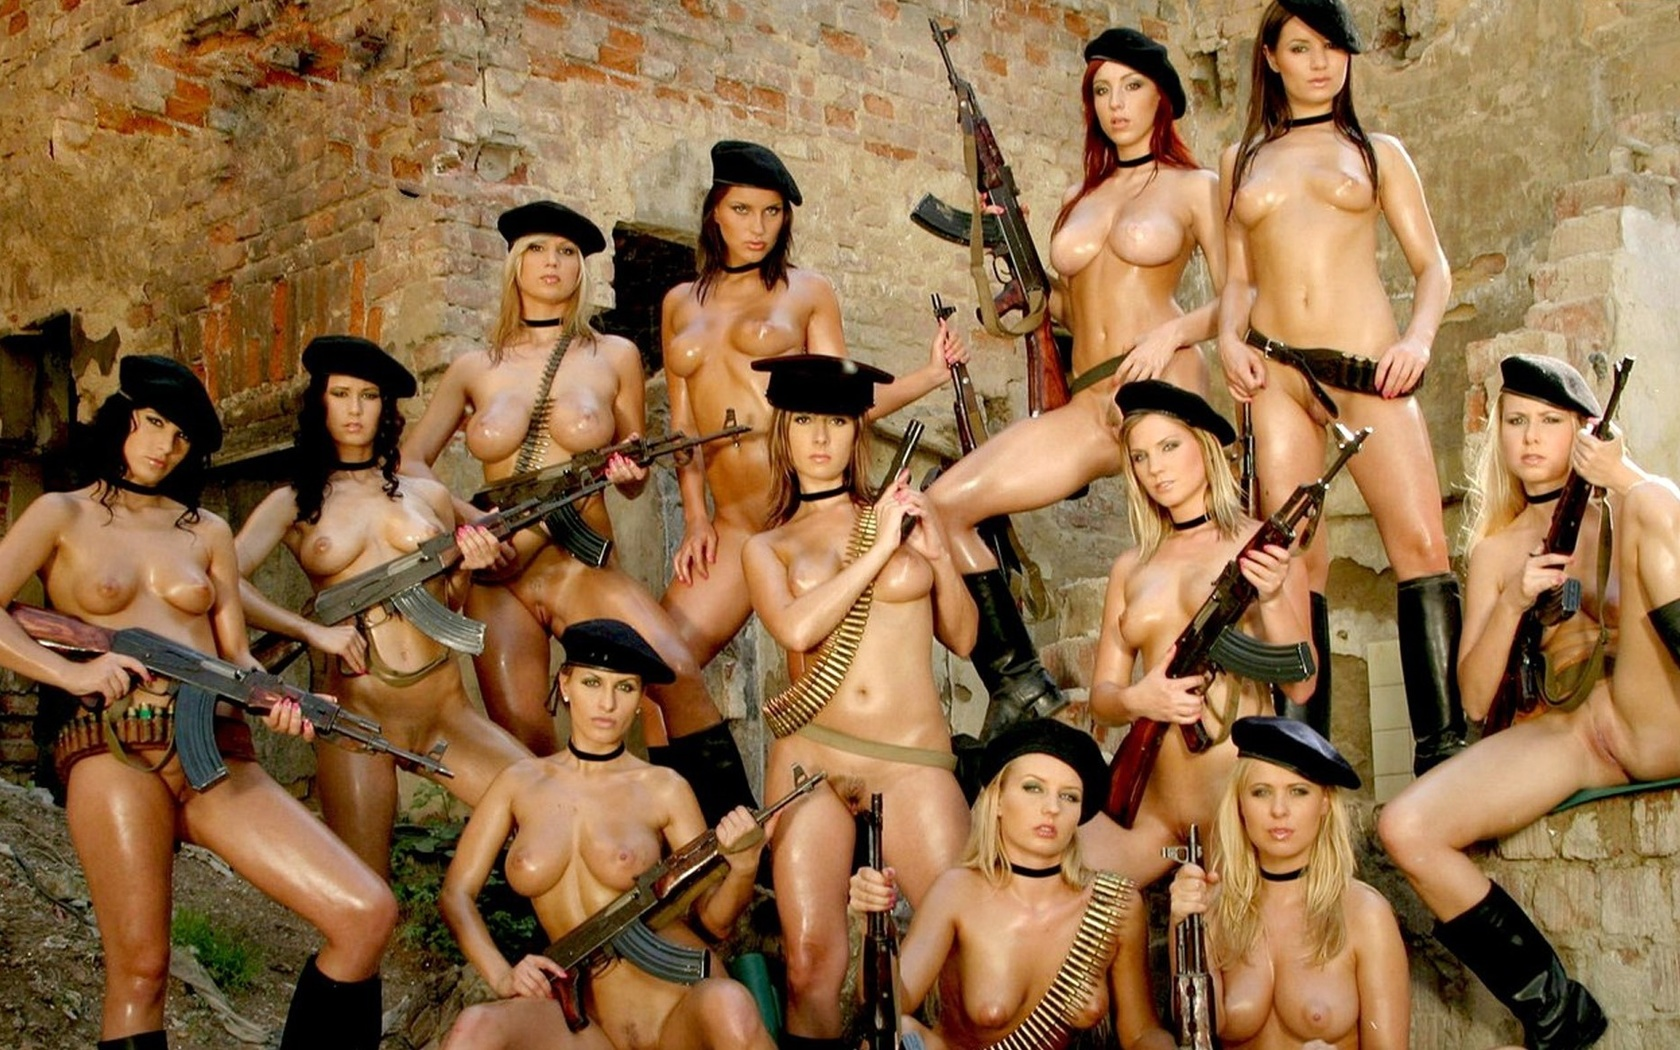 Free download naked boobs army girl wallpapers softcore images